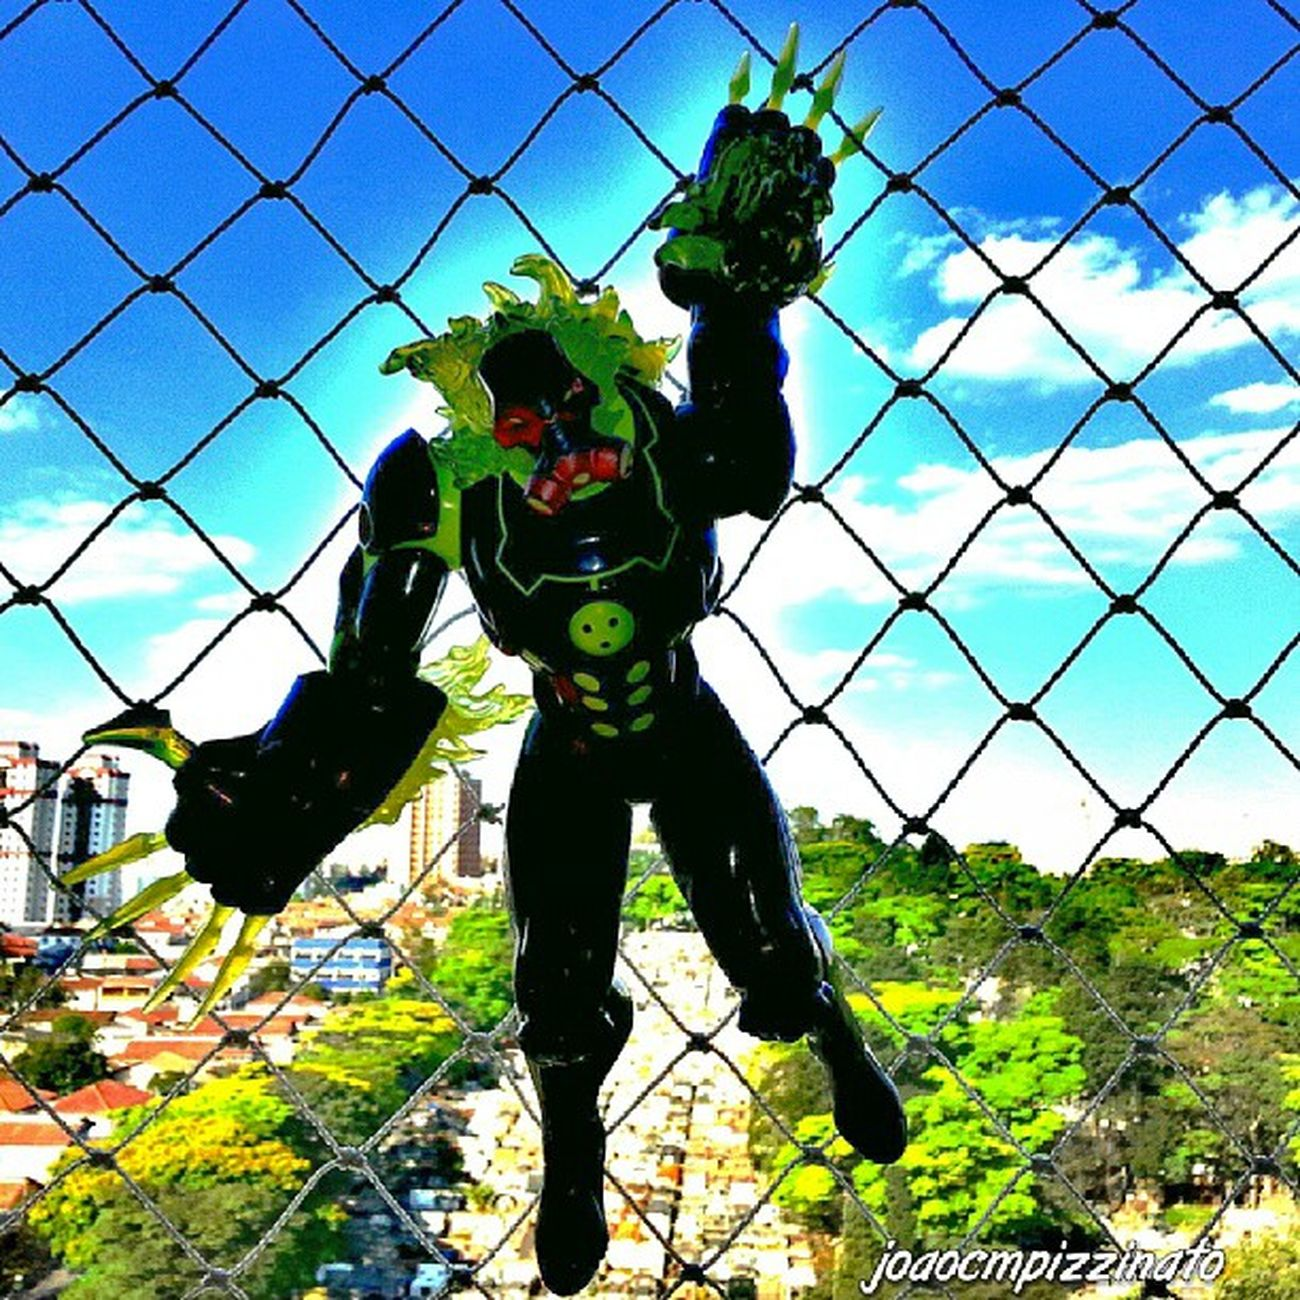 Tozxon. Tozxon MaxSteel Toy Colors photography city zonasul saopaulo brasil